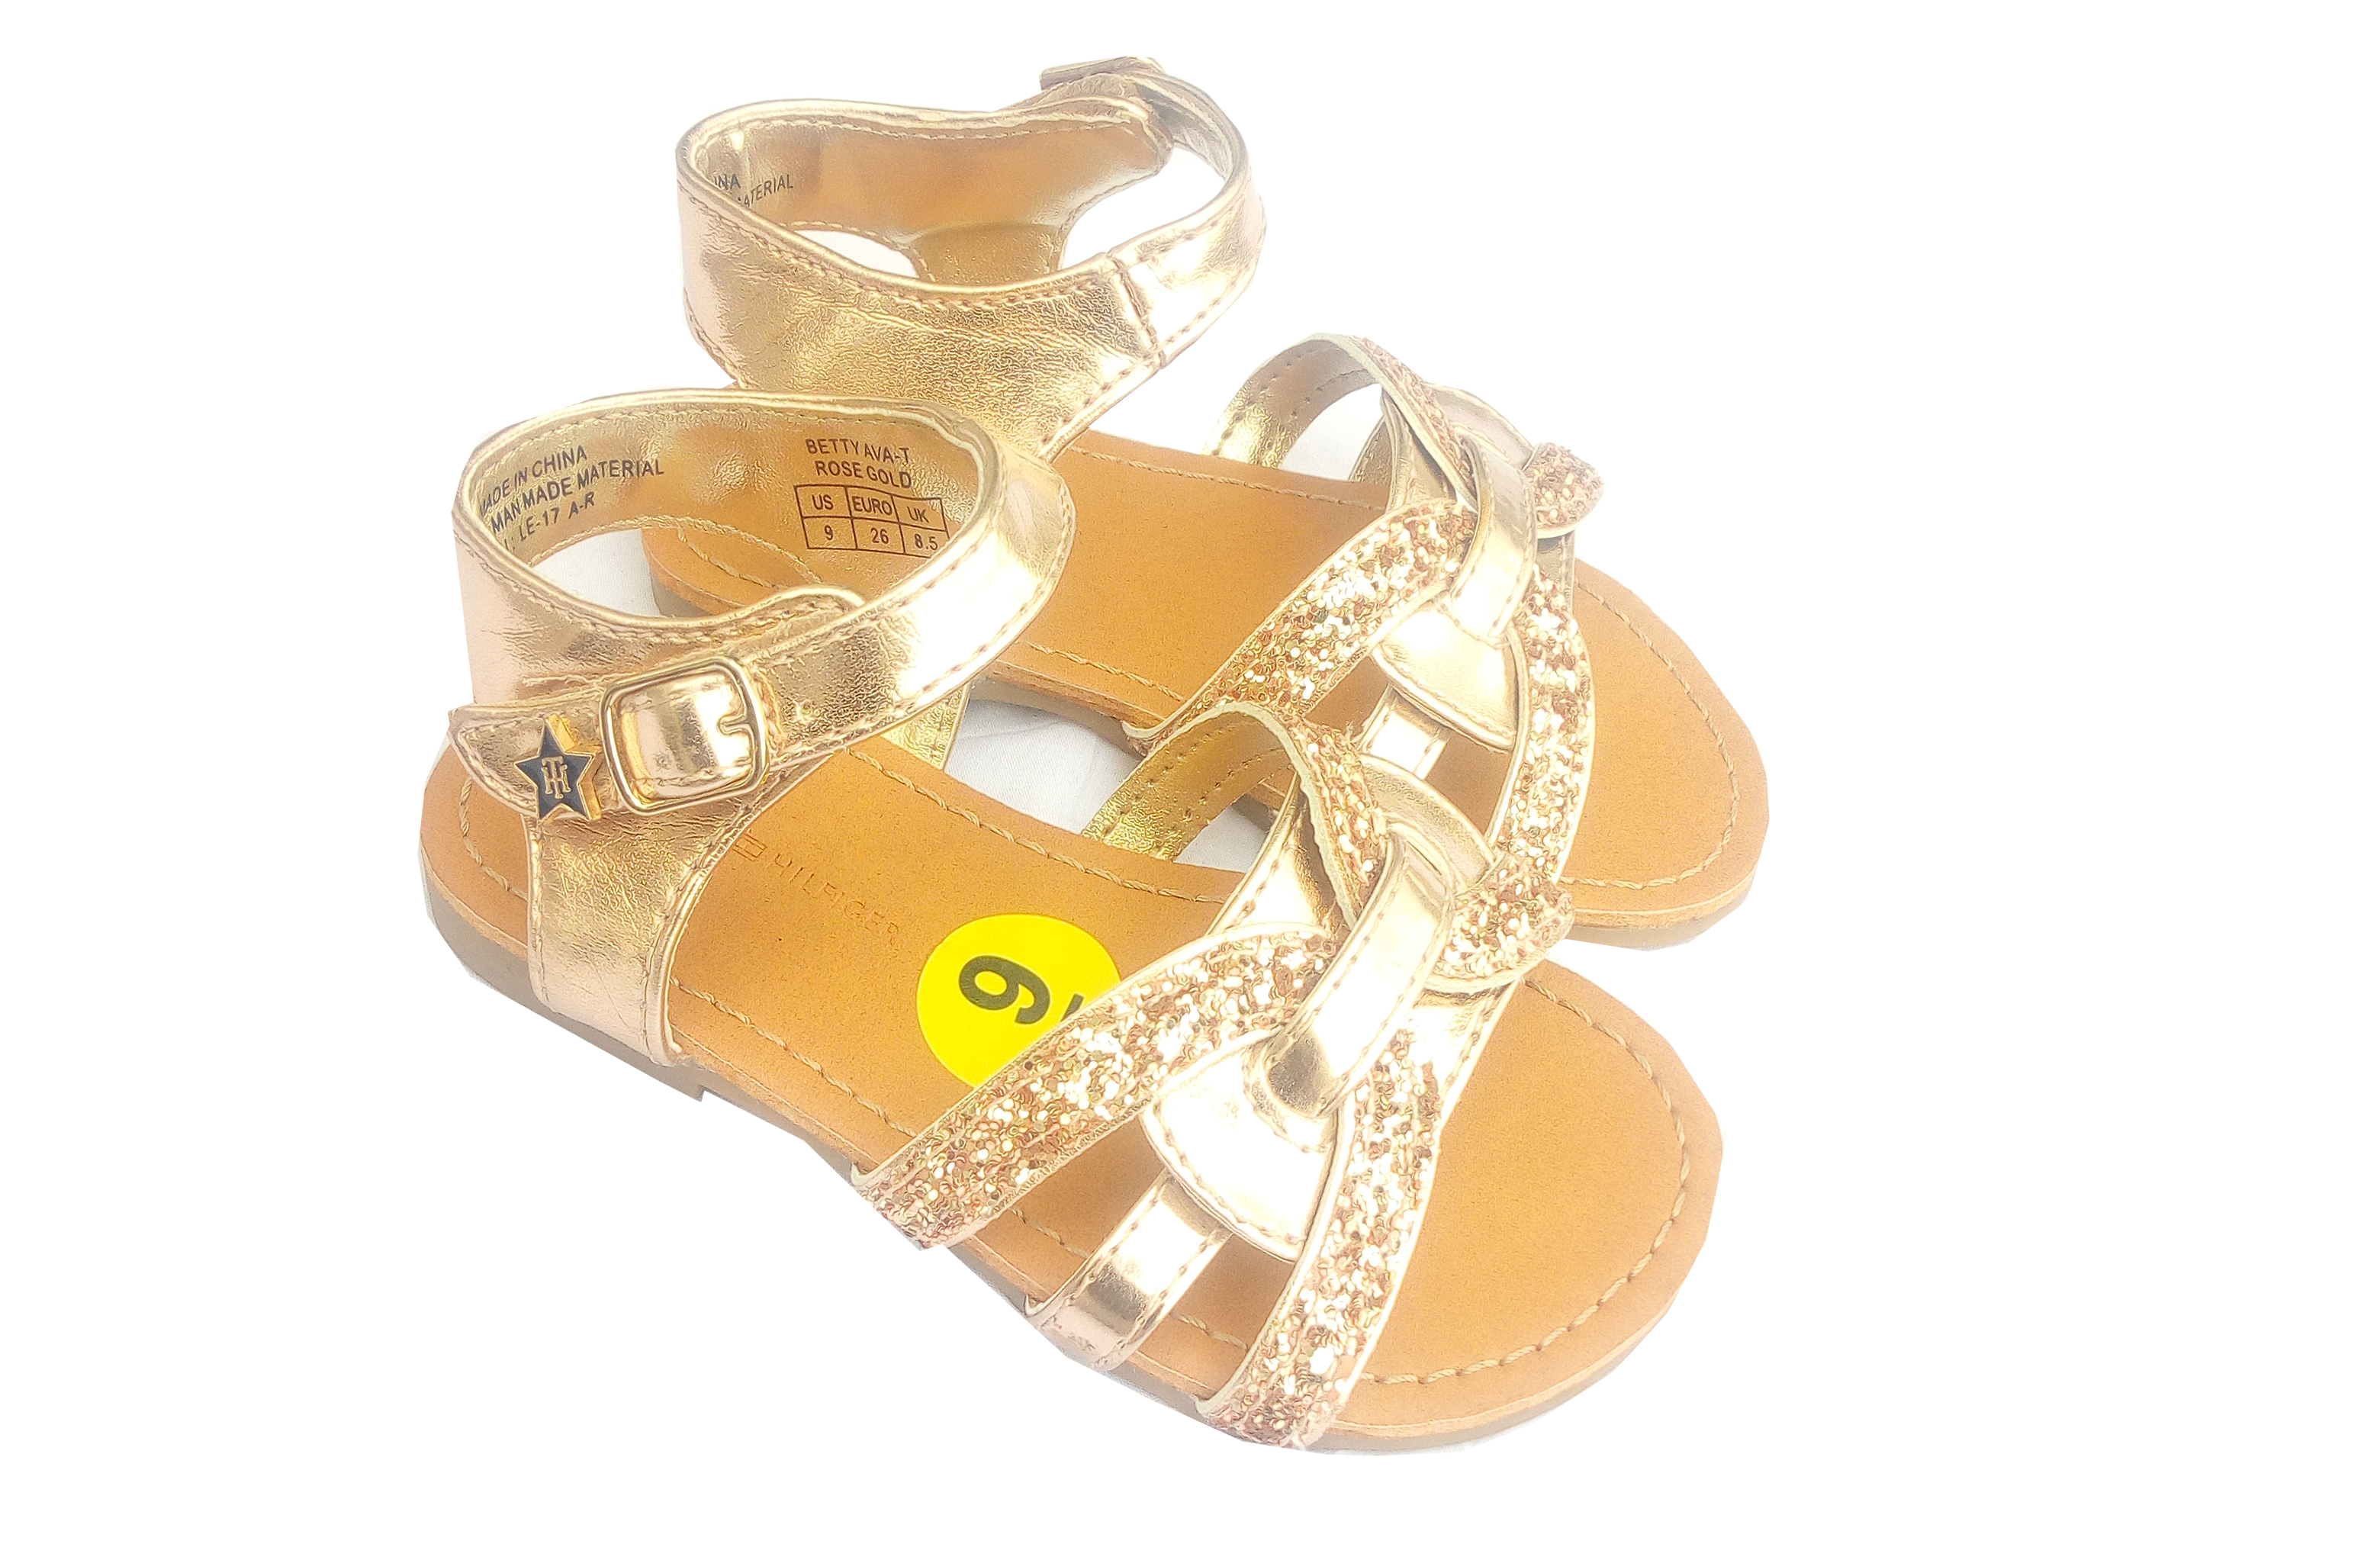 Tommy Hilfiger Baby Girl Gold Sandals Size 5